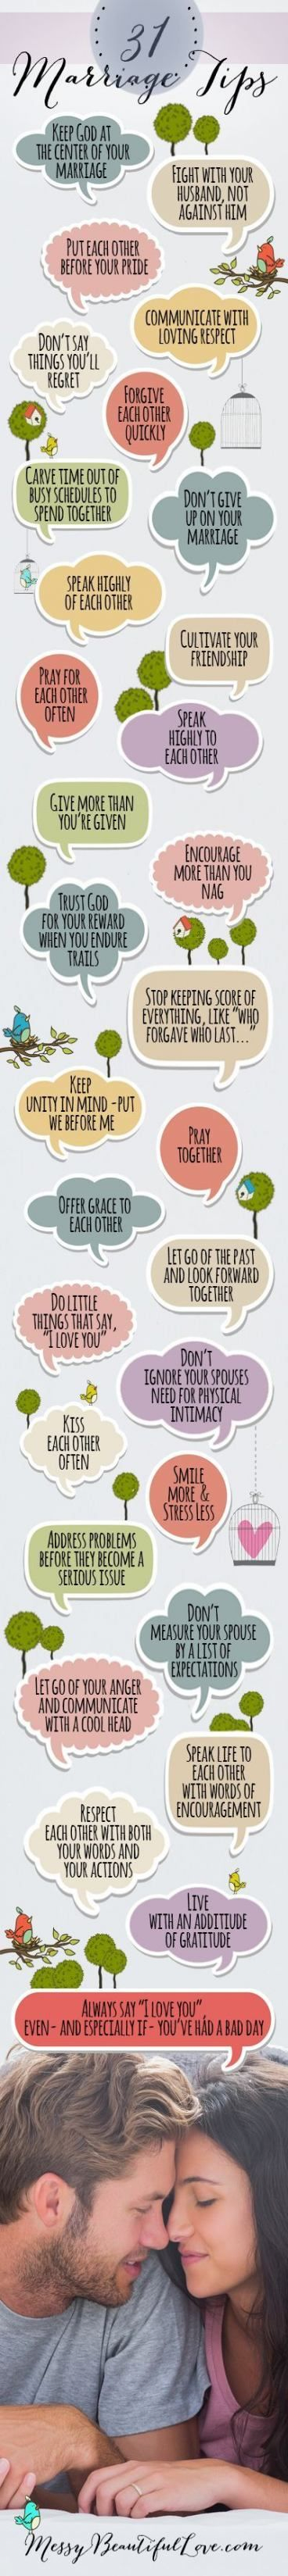 Travel quotes love romances people 47+ ideas for 2019 #travel #quotes